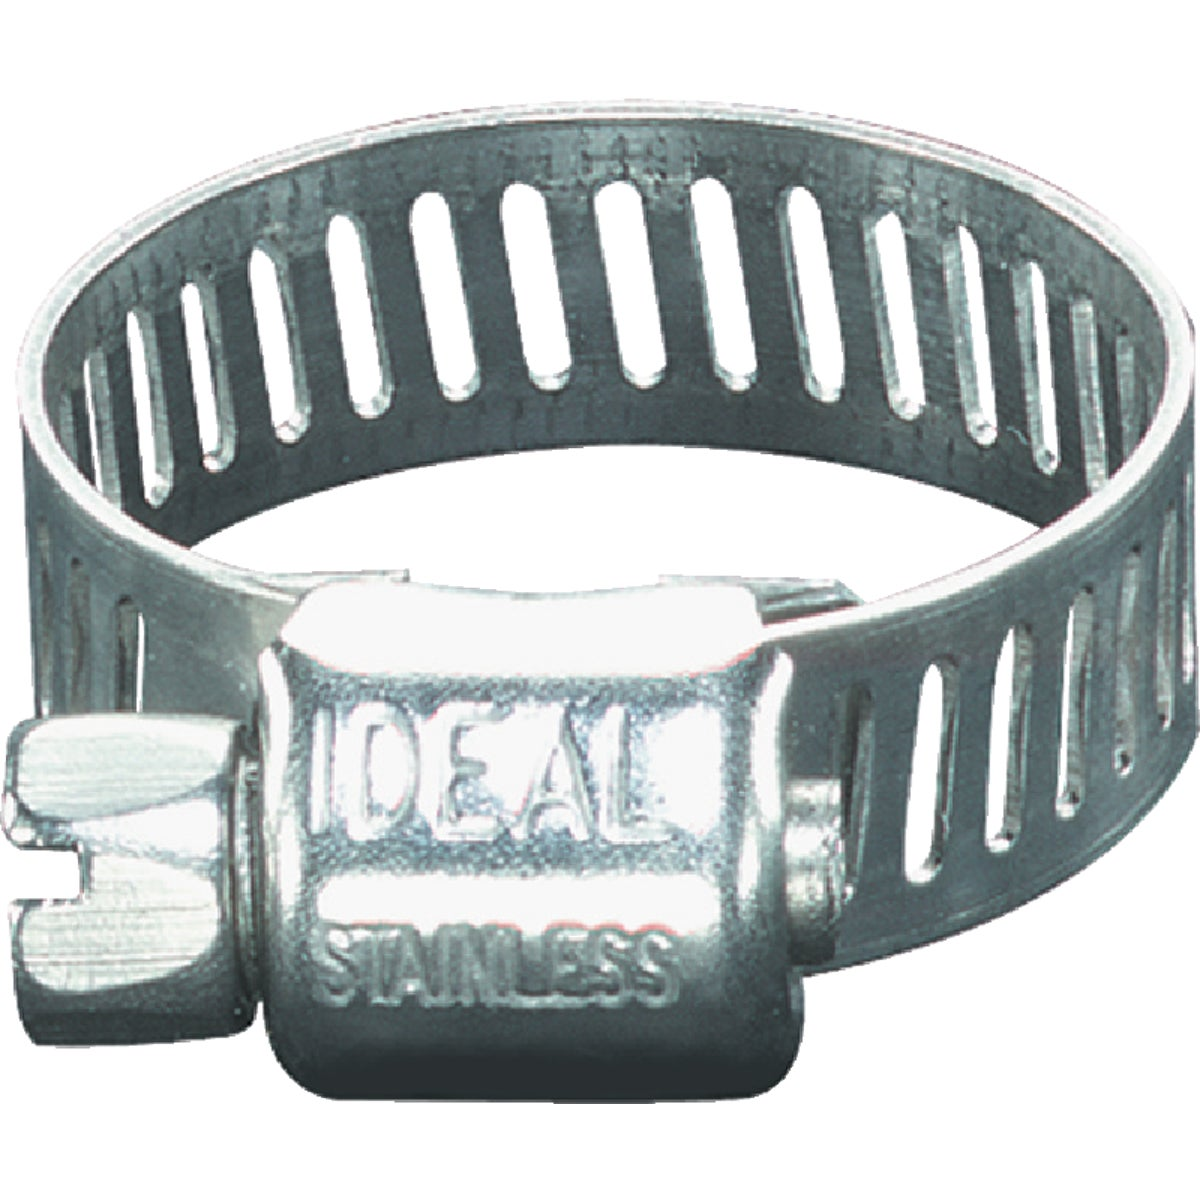 1/4-5/8 CLAMP - 6204053 by Ideal Corp